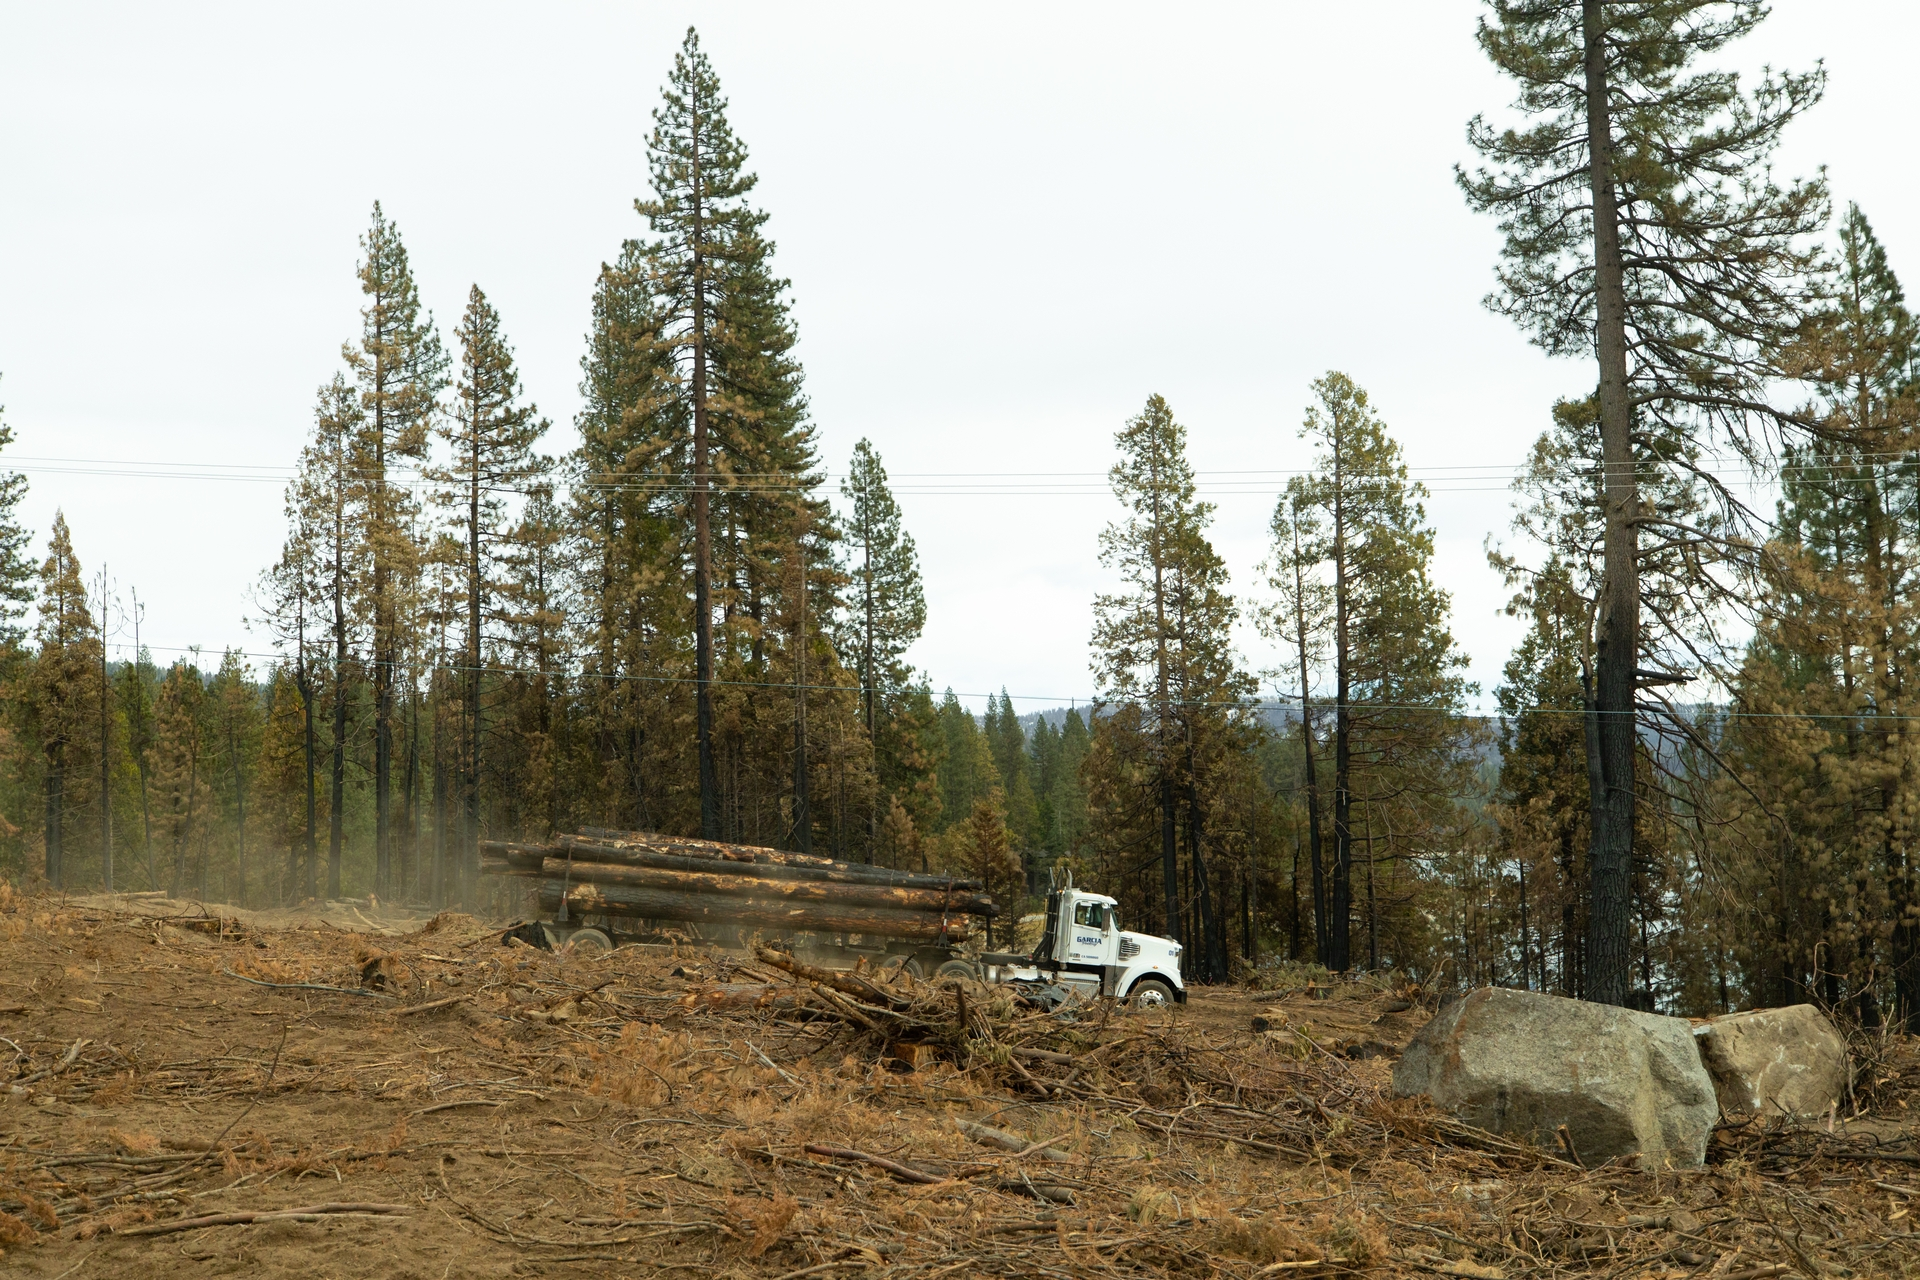 The nonprofit Highway 168 Fire Safe Council works to educate, identify and implement fuel reduction projects such as tree debris clearance.